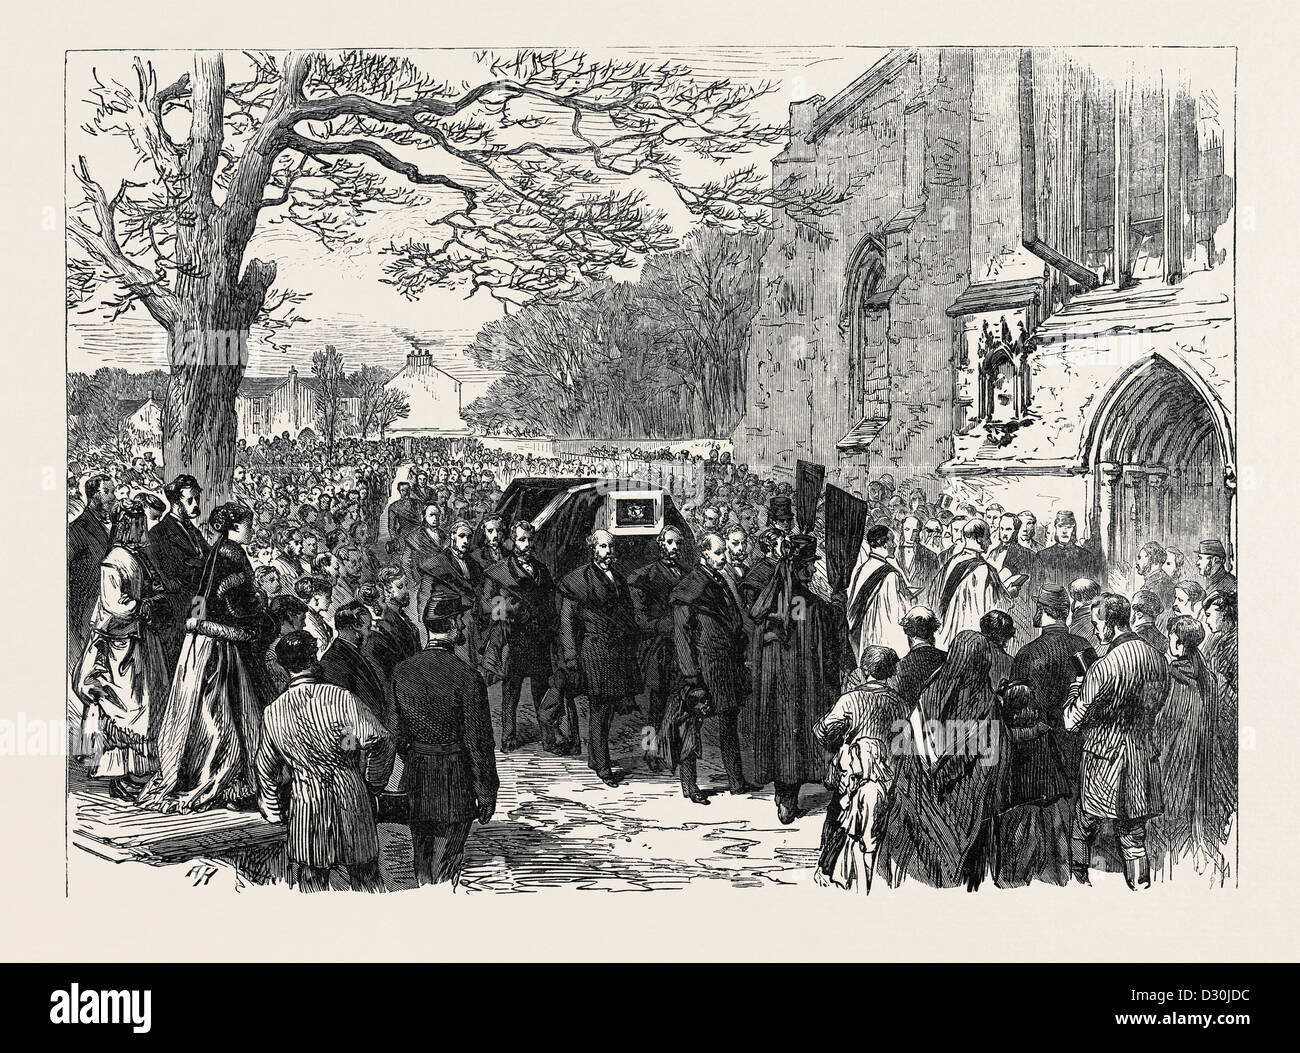 THE HUNTING DISASTER IN YORKSHIRE: THE FUNERAL OF SIR CHARLES SLINGSBY AT KNARESBOROUGH 1869 - Stock Image